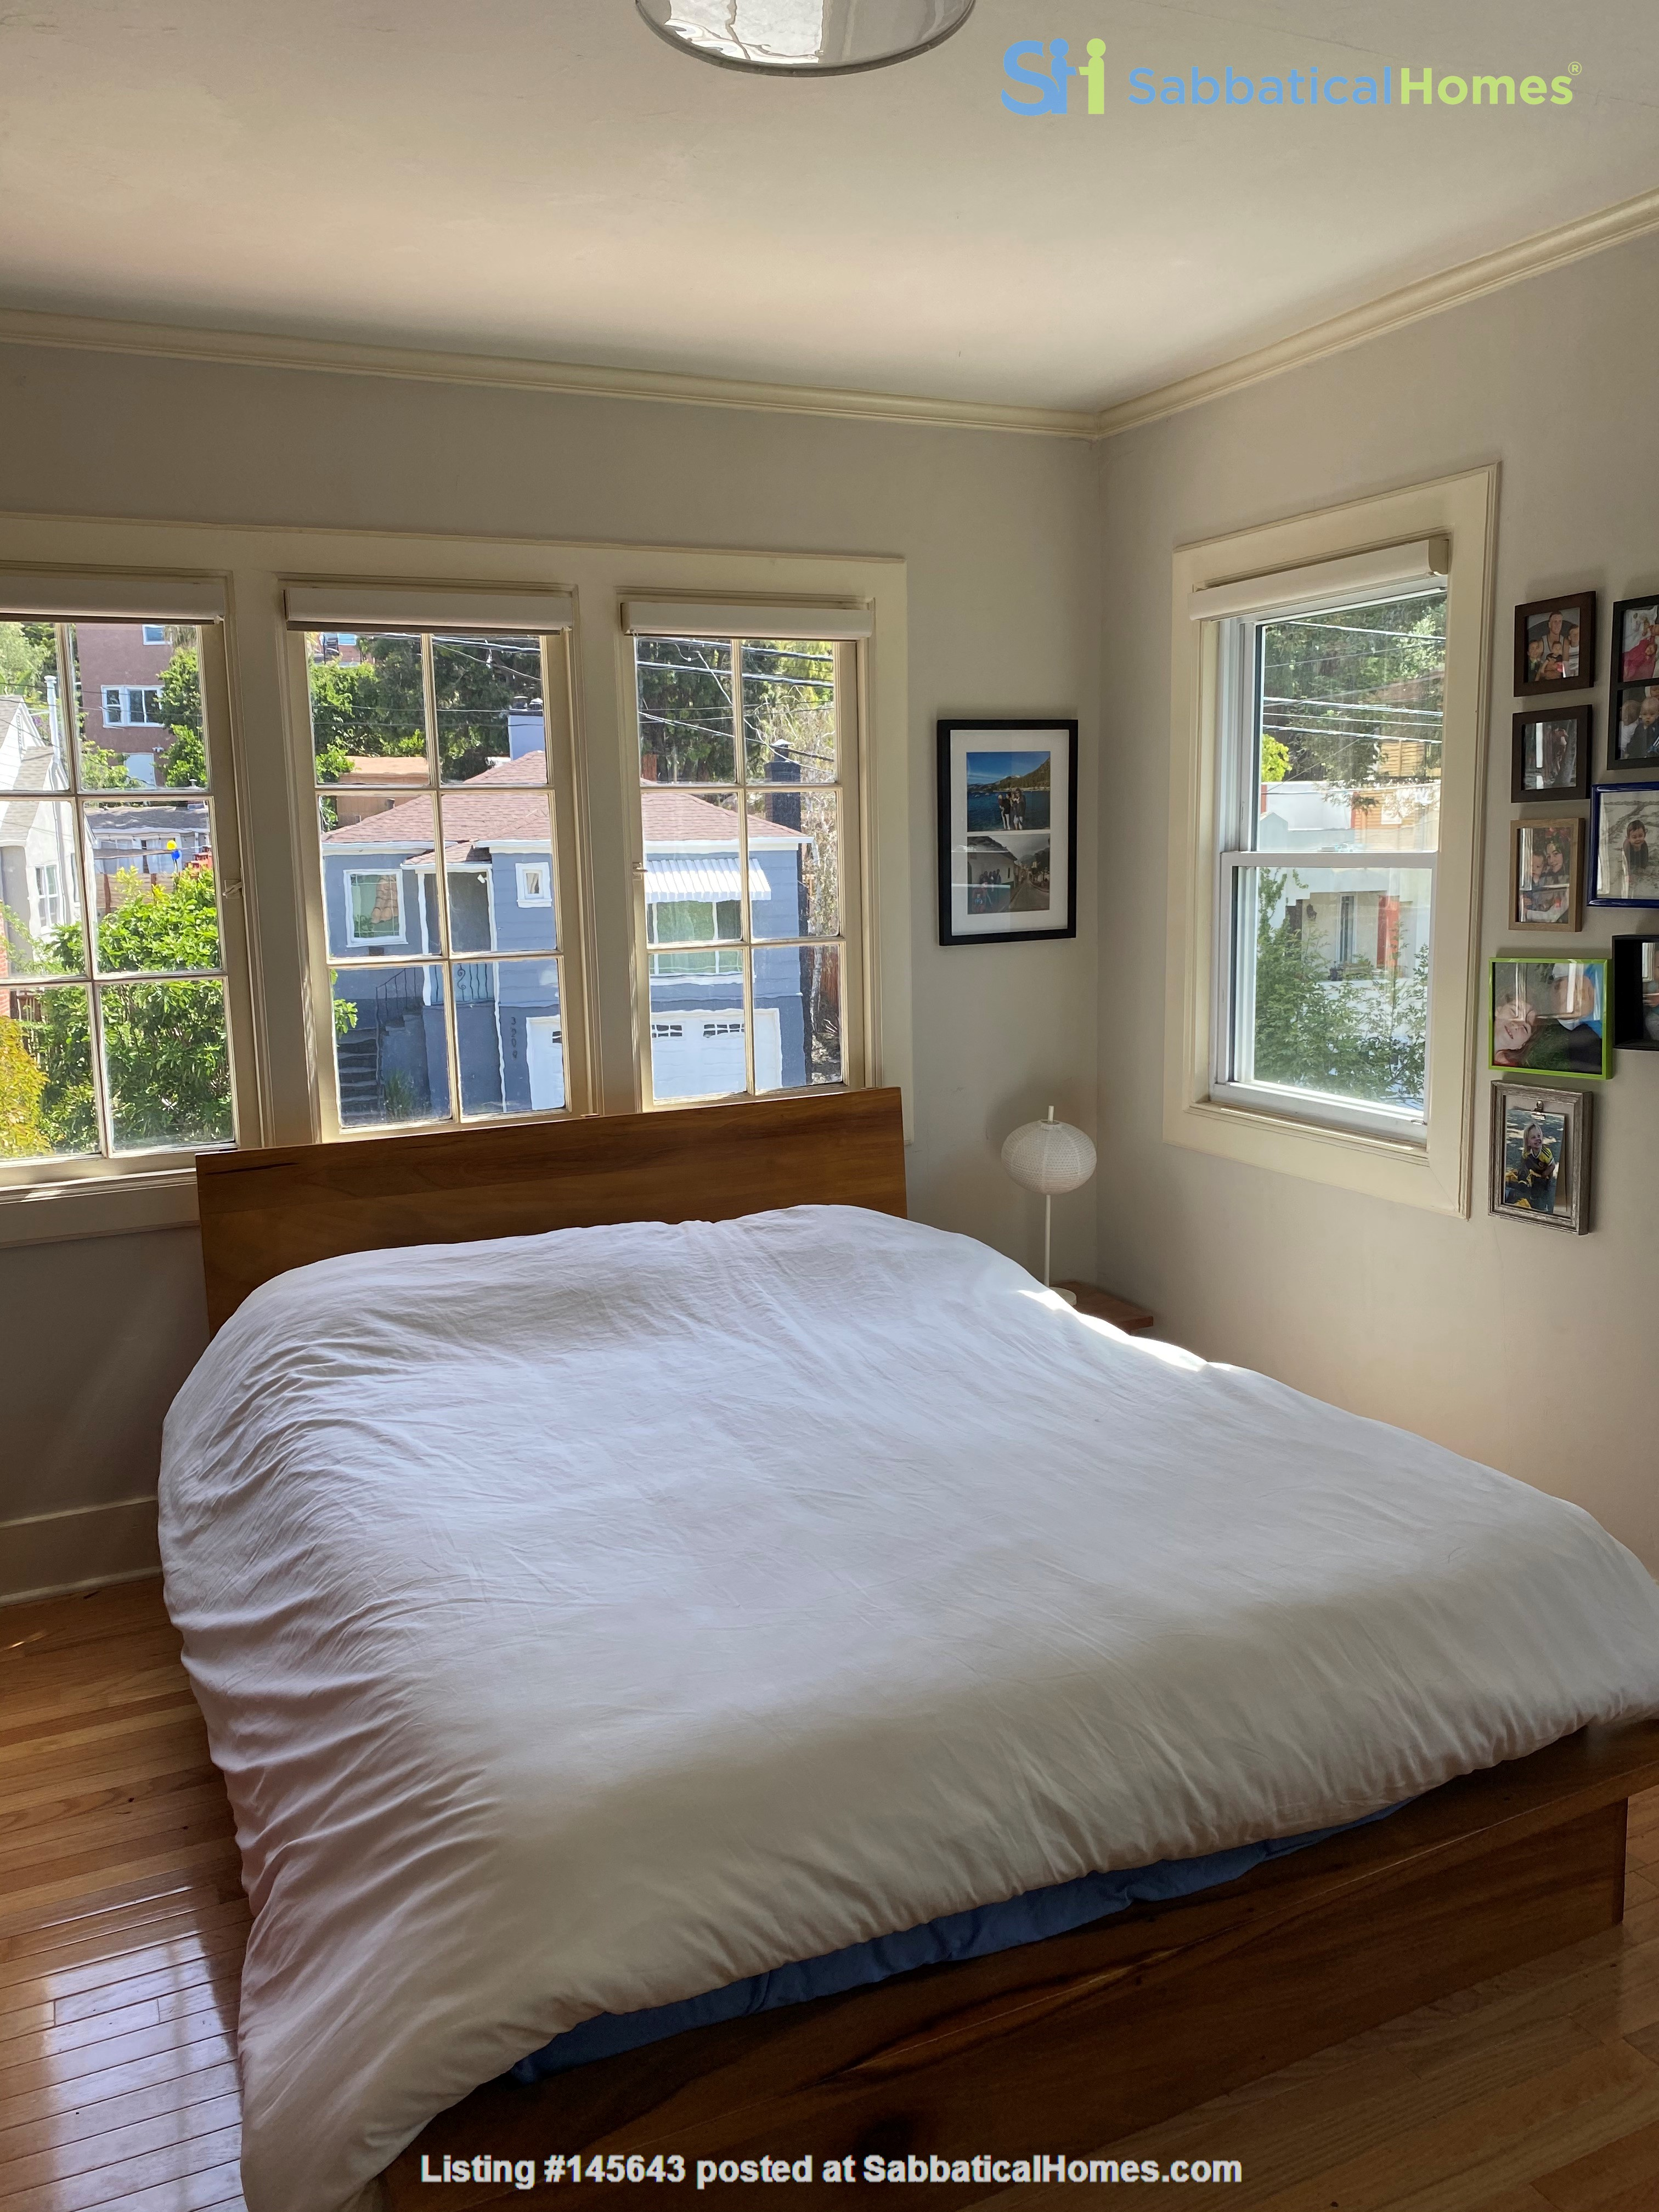 Charming 2-bedroom family-friendly home with big garden Home Rental in Oakland, California, United States 0